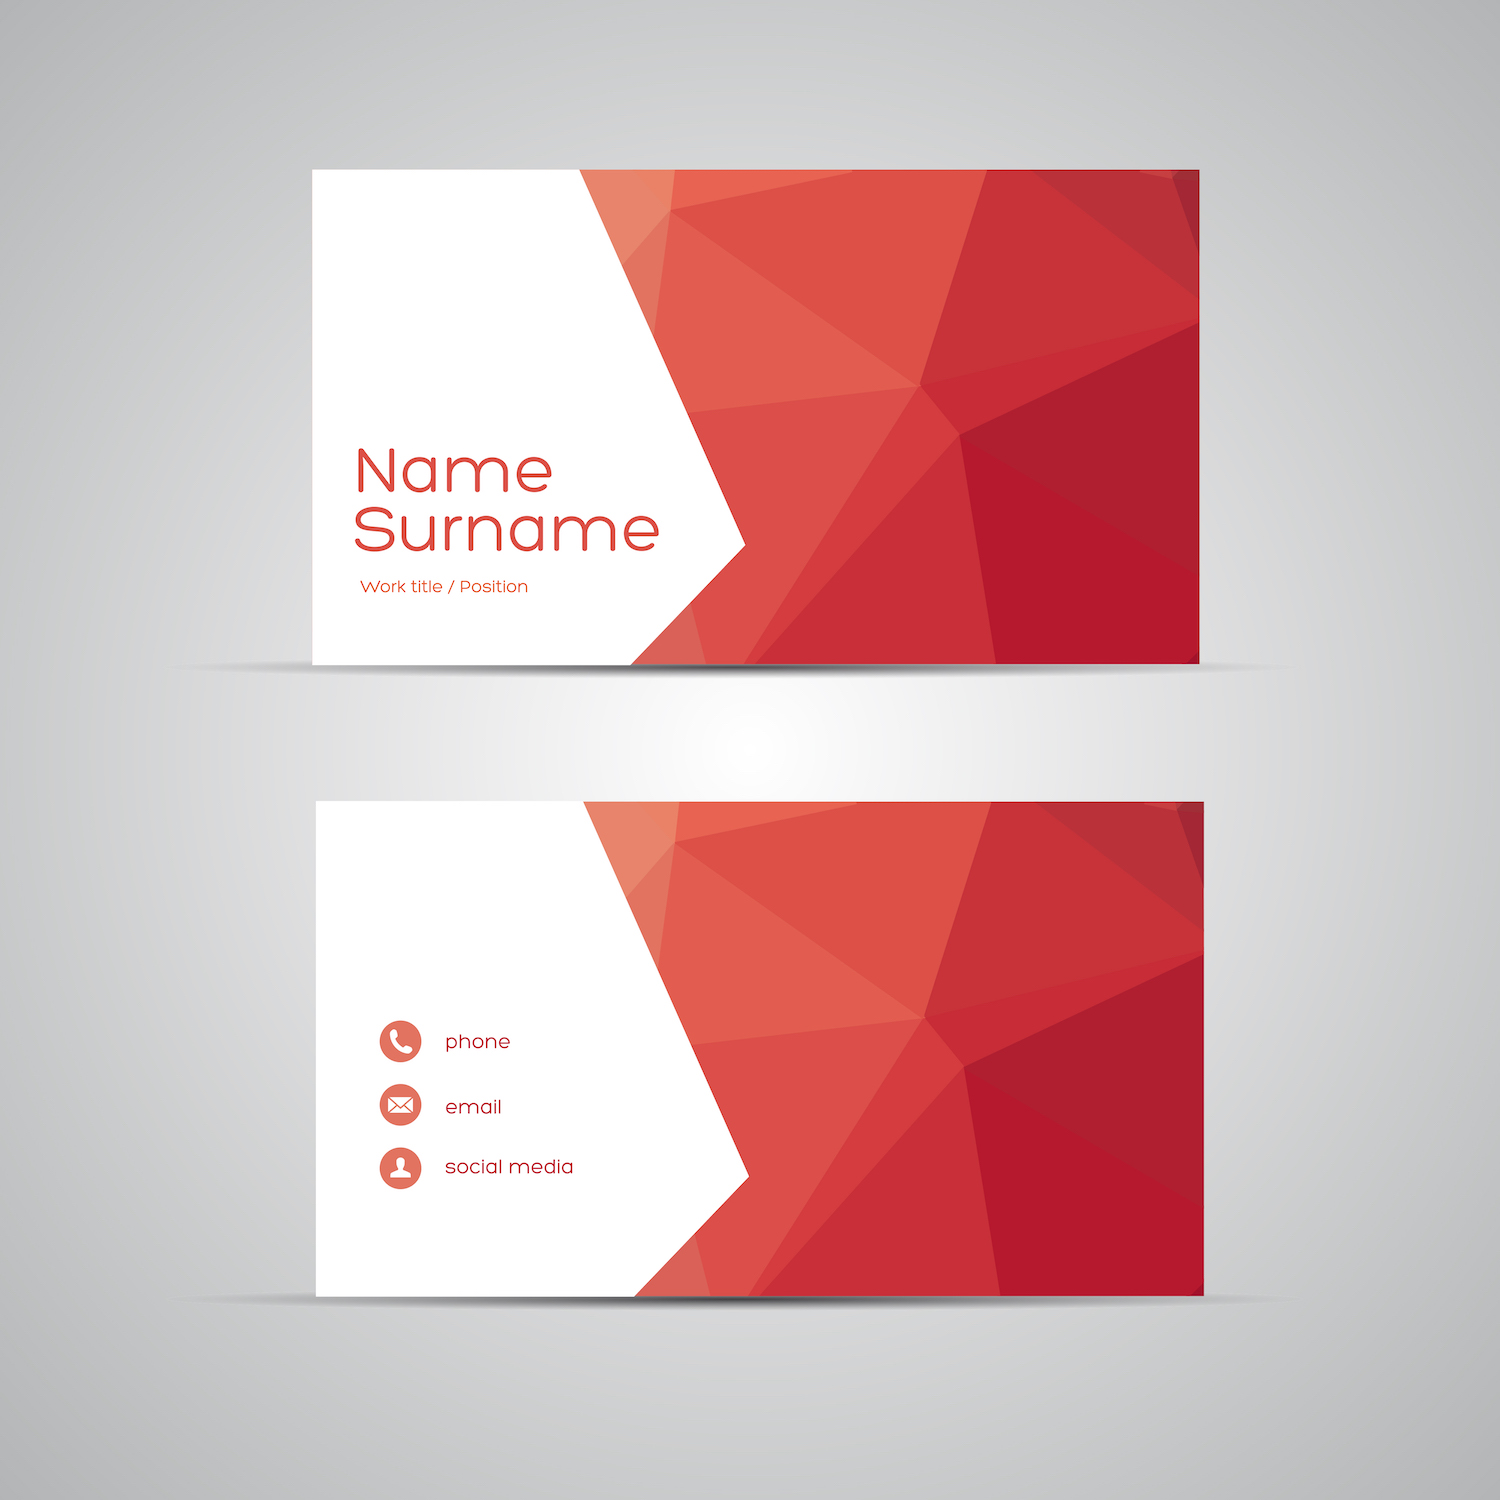 Pharmacy Business Card Design | Branding Los Angeles